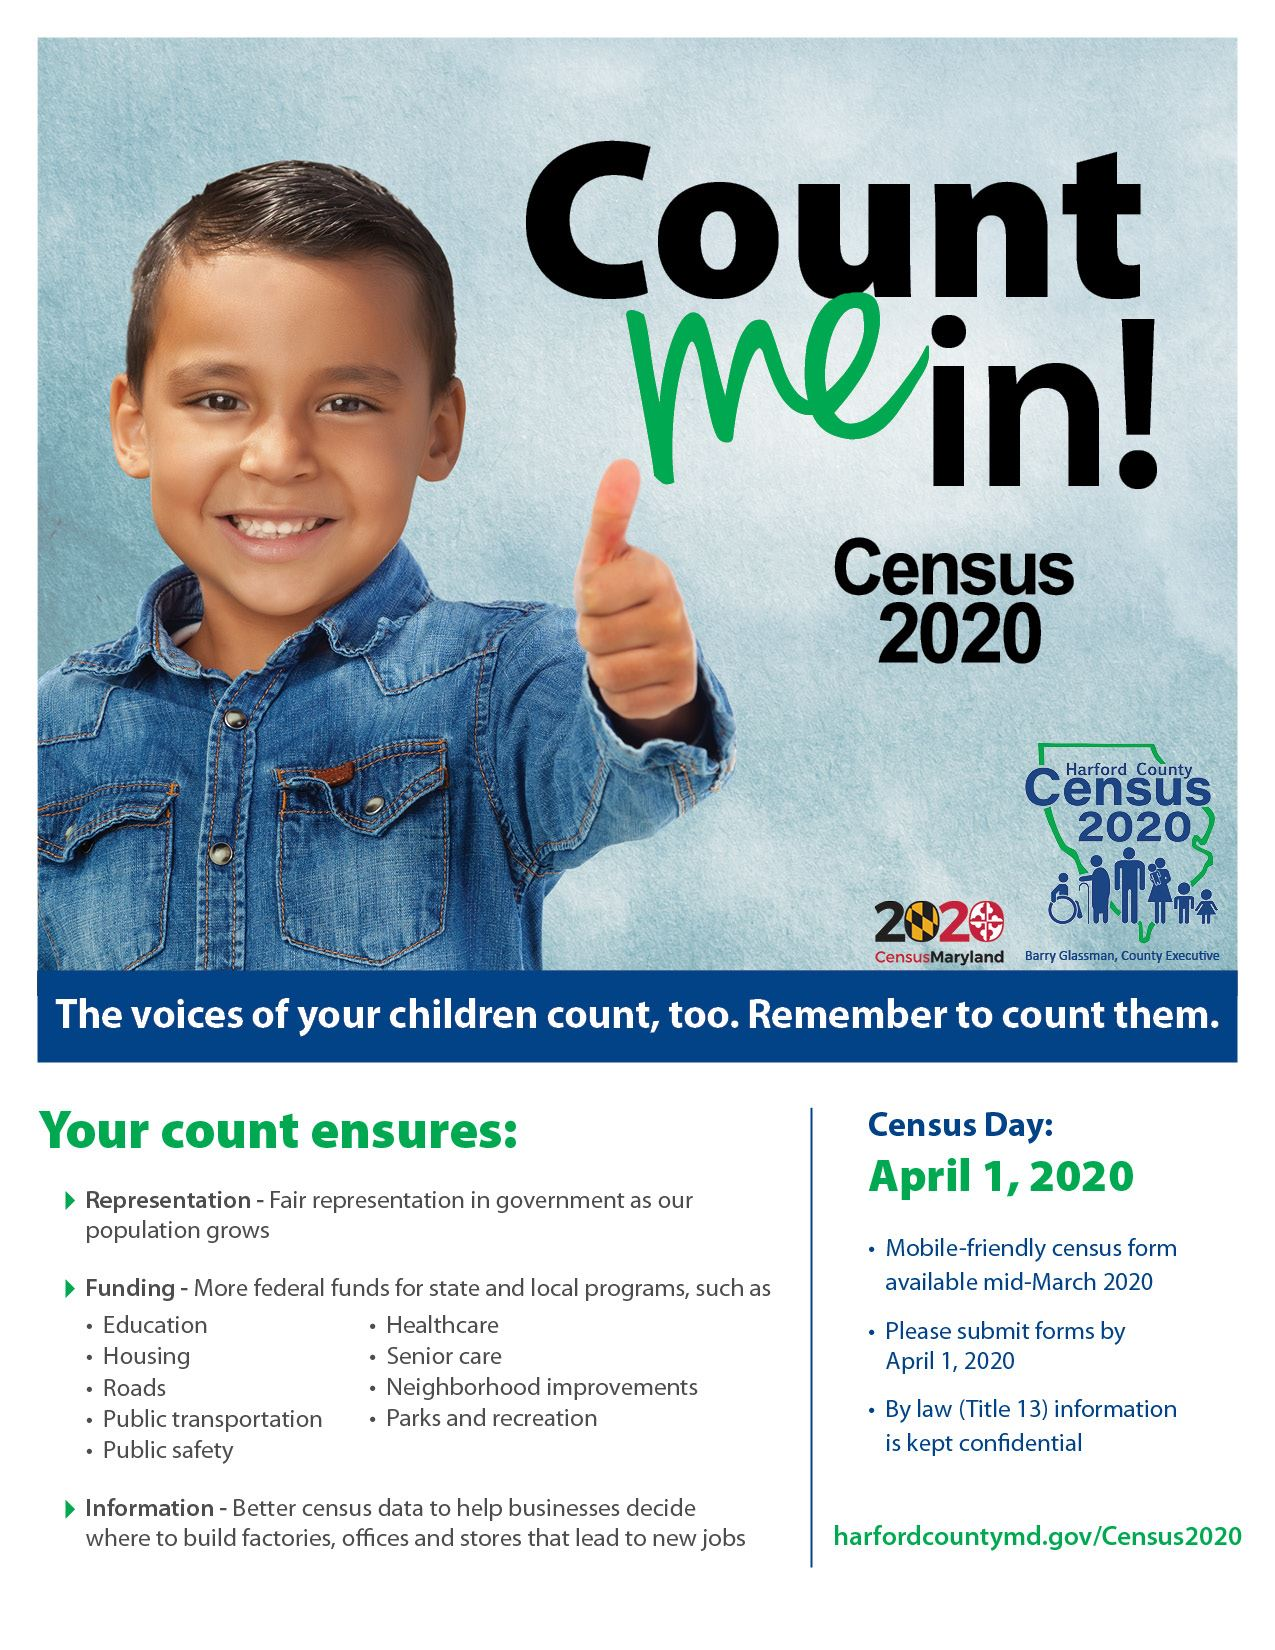 HCGCensus_CountMeIn Hispanic Flyer